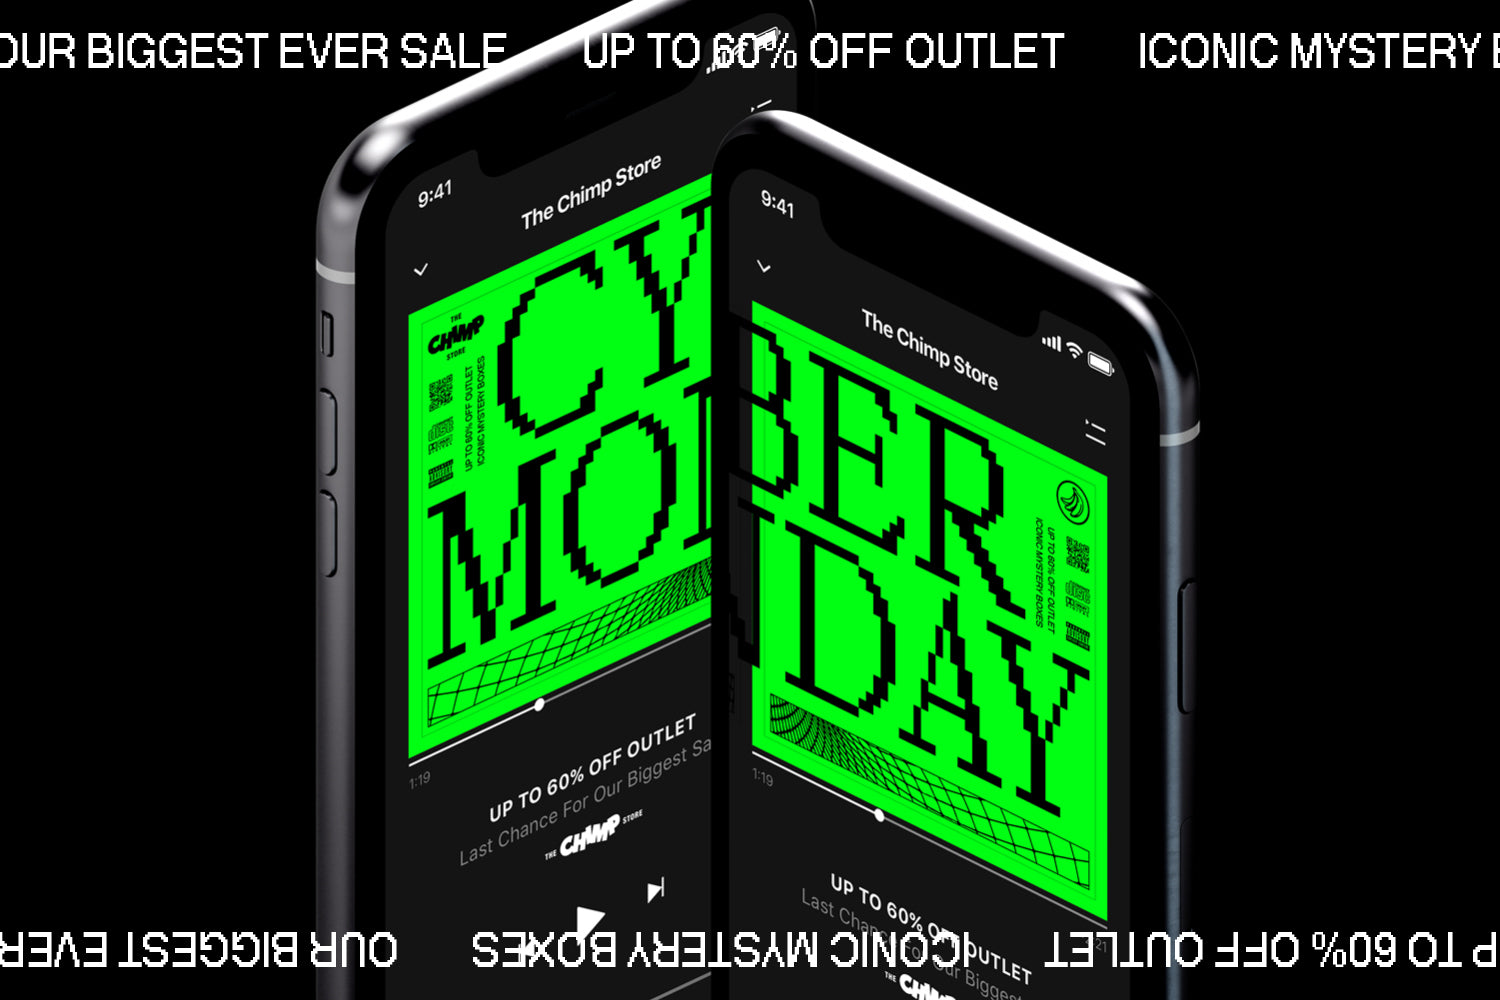 The Chimp Store Cyber Monday